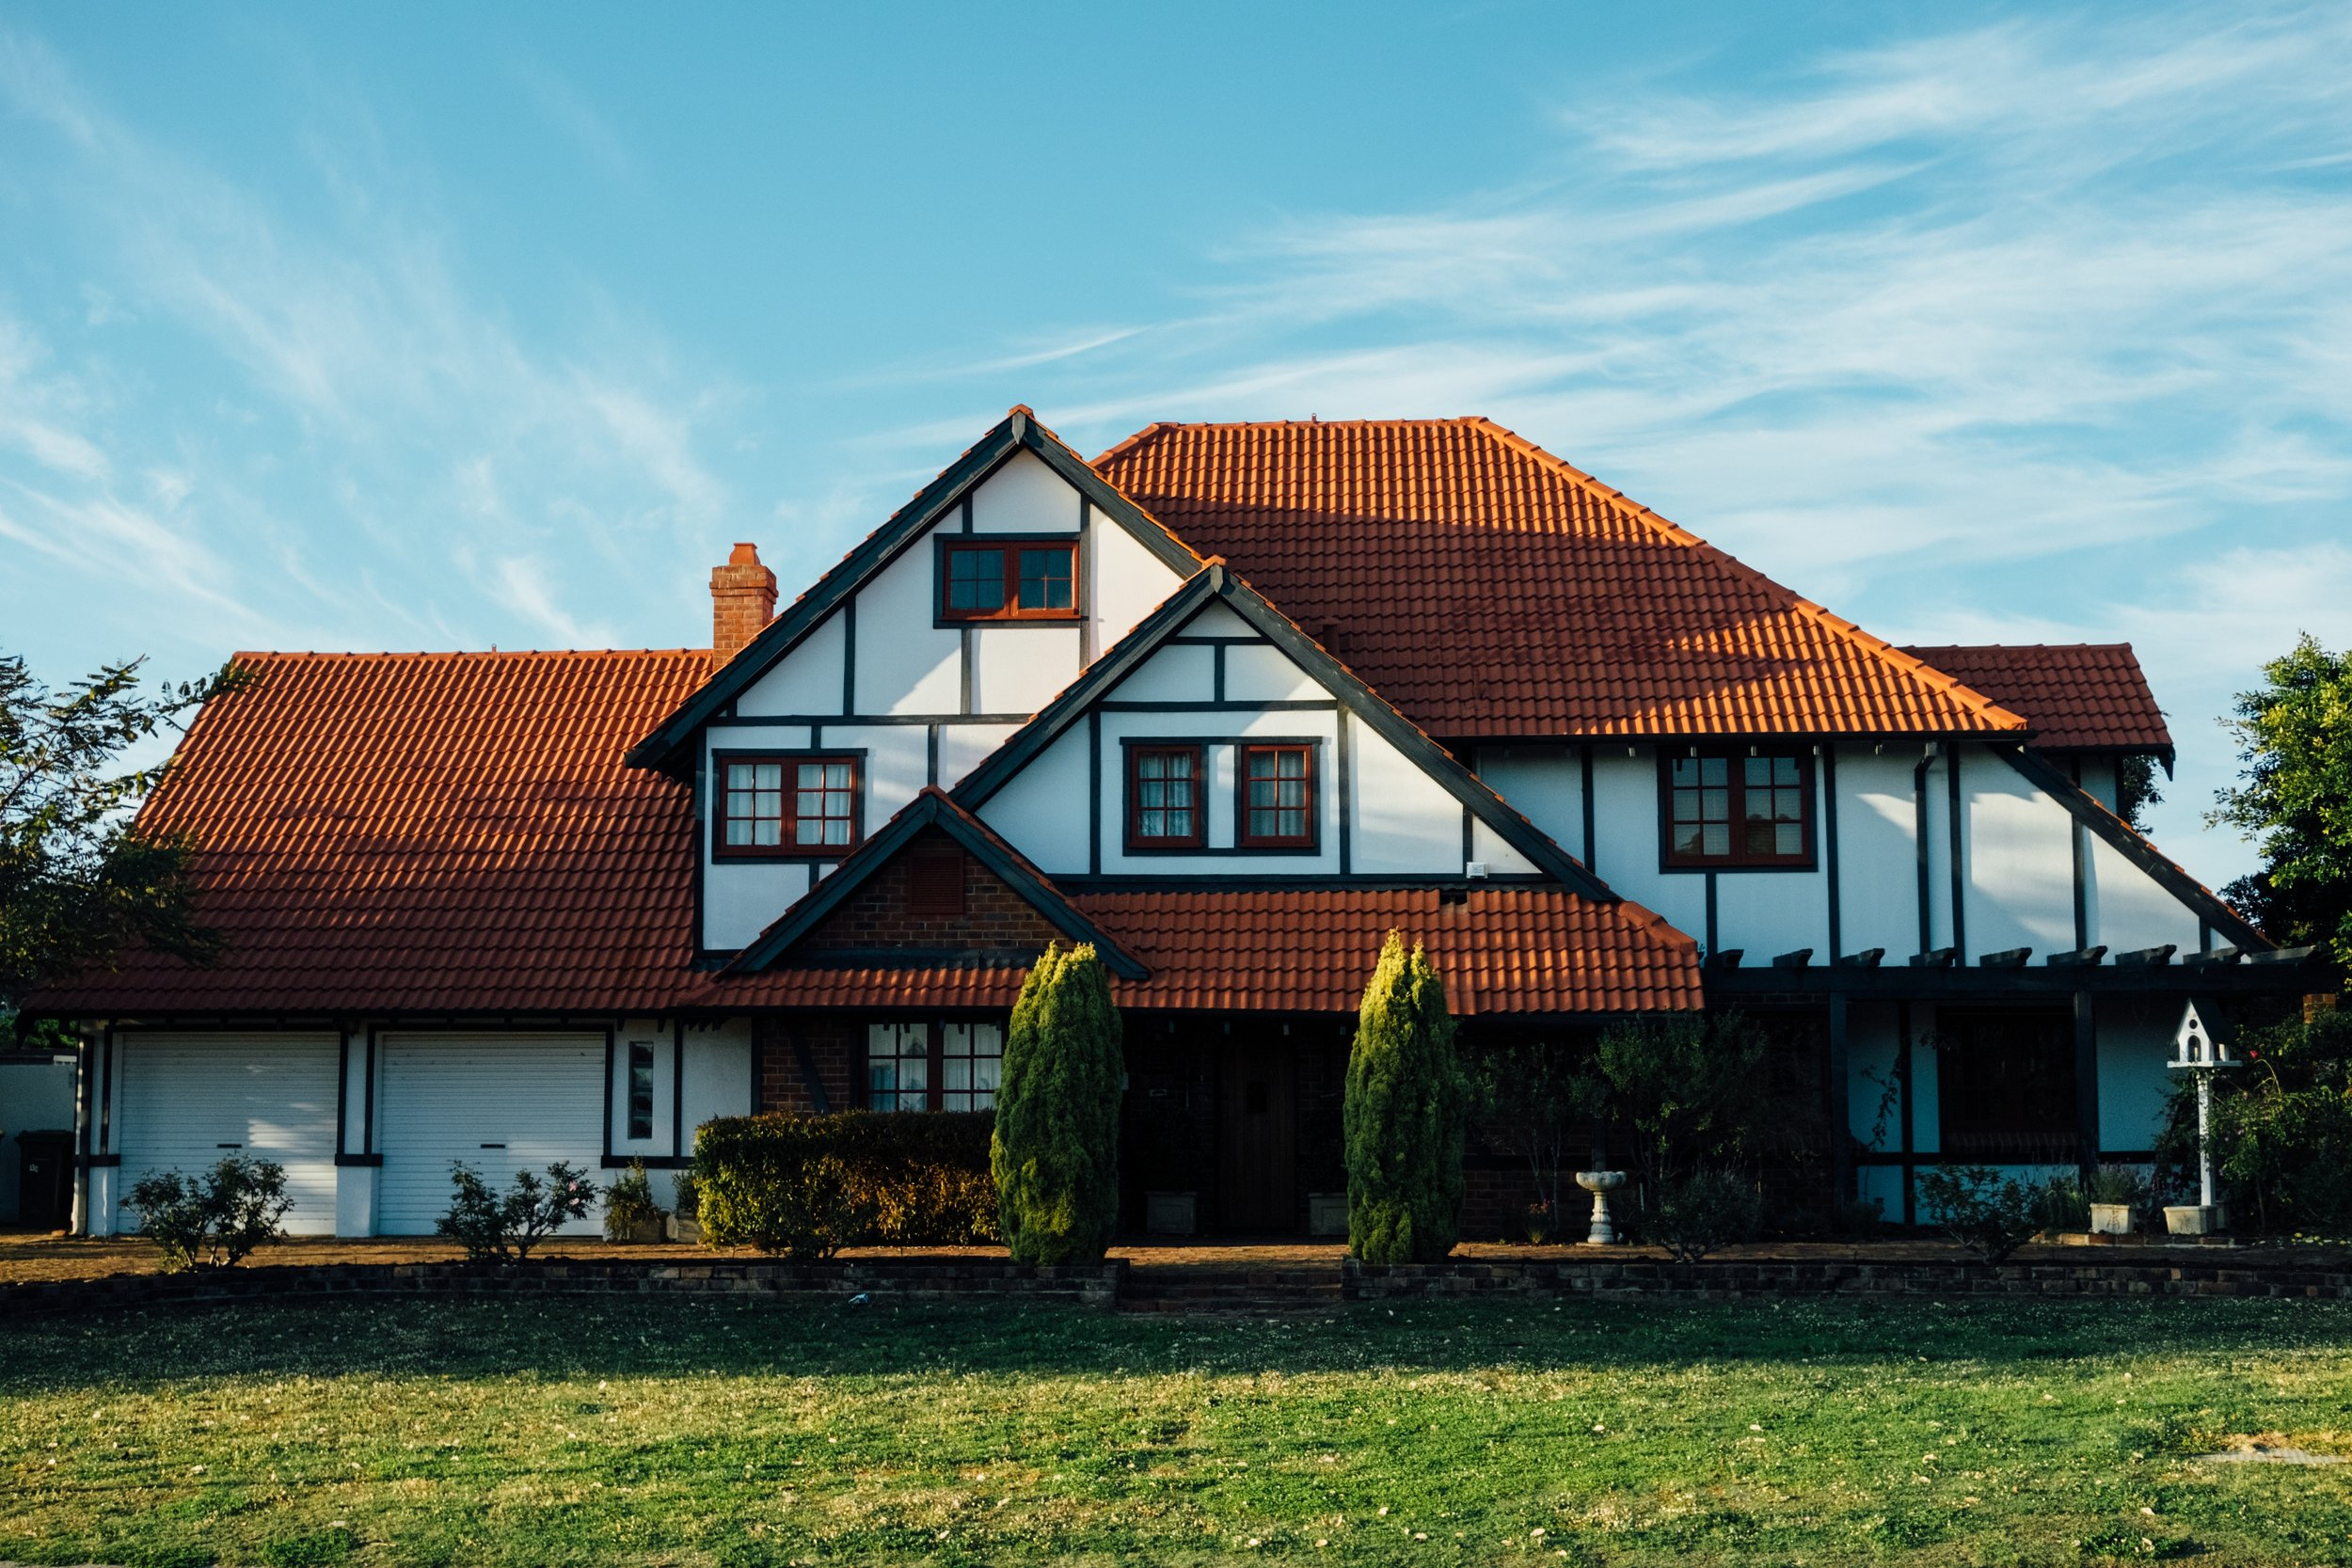 tax-deductions-on-roofing-roof.jpg